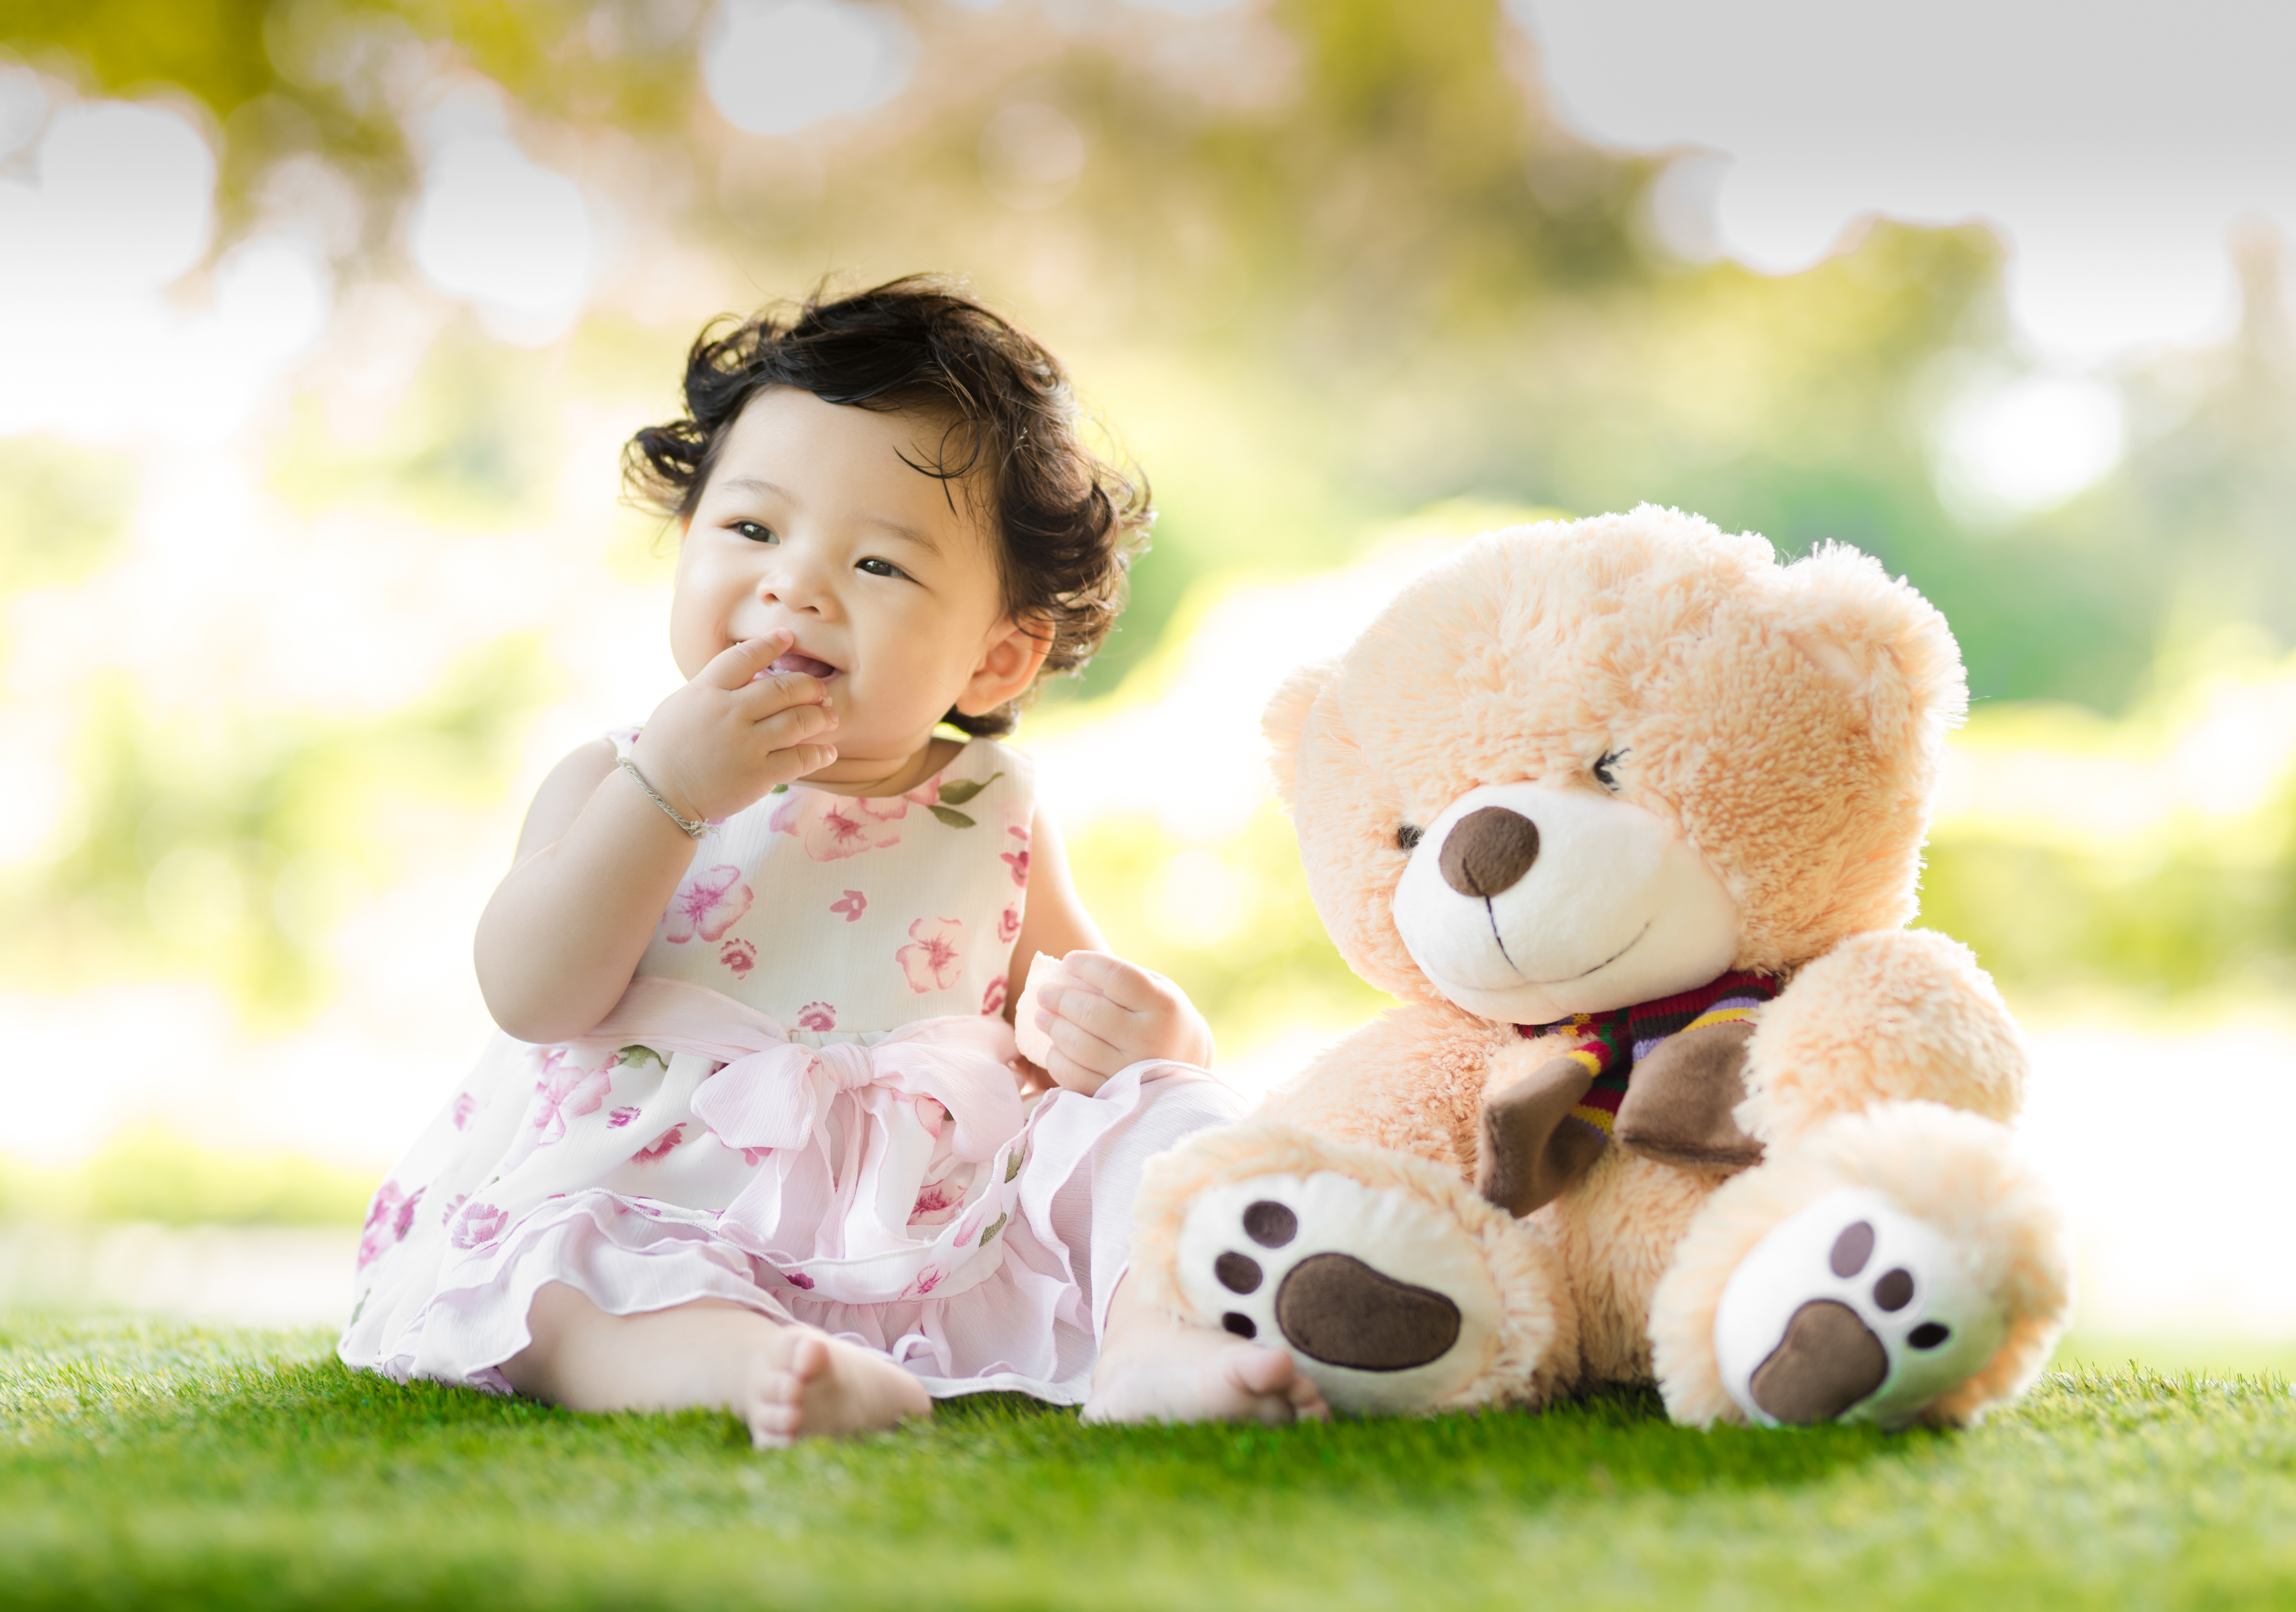 Cute Baby And Baba Wallpaper 177 Heartwarming Baby Photos 183 Pexels 183 Free Stock Photos